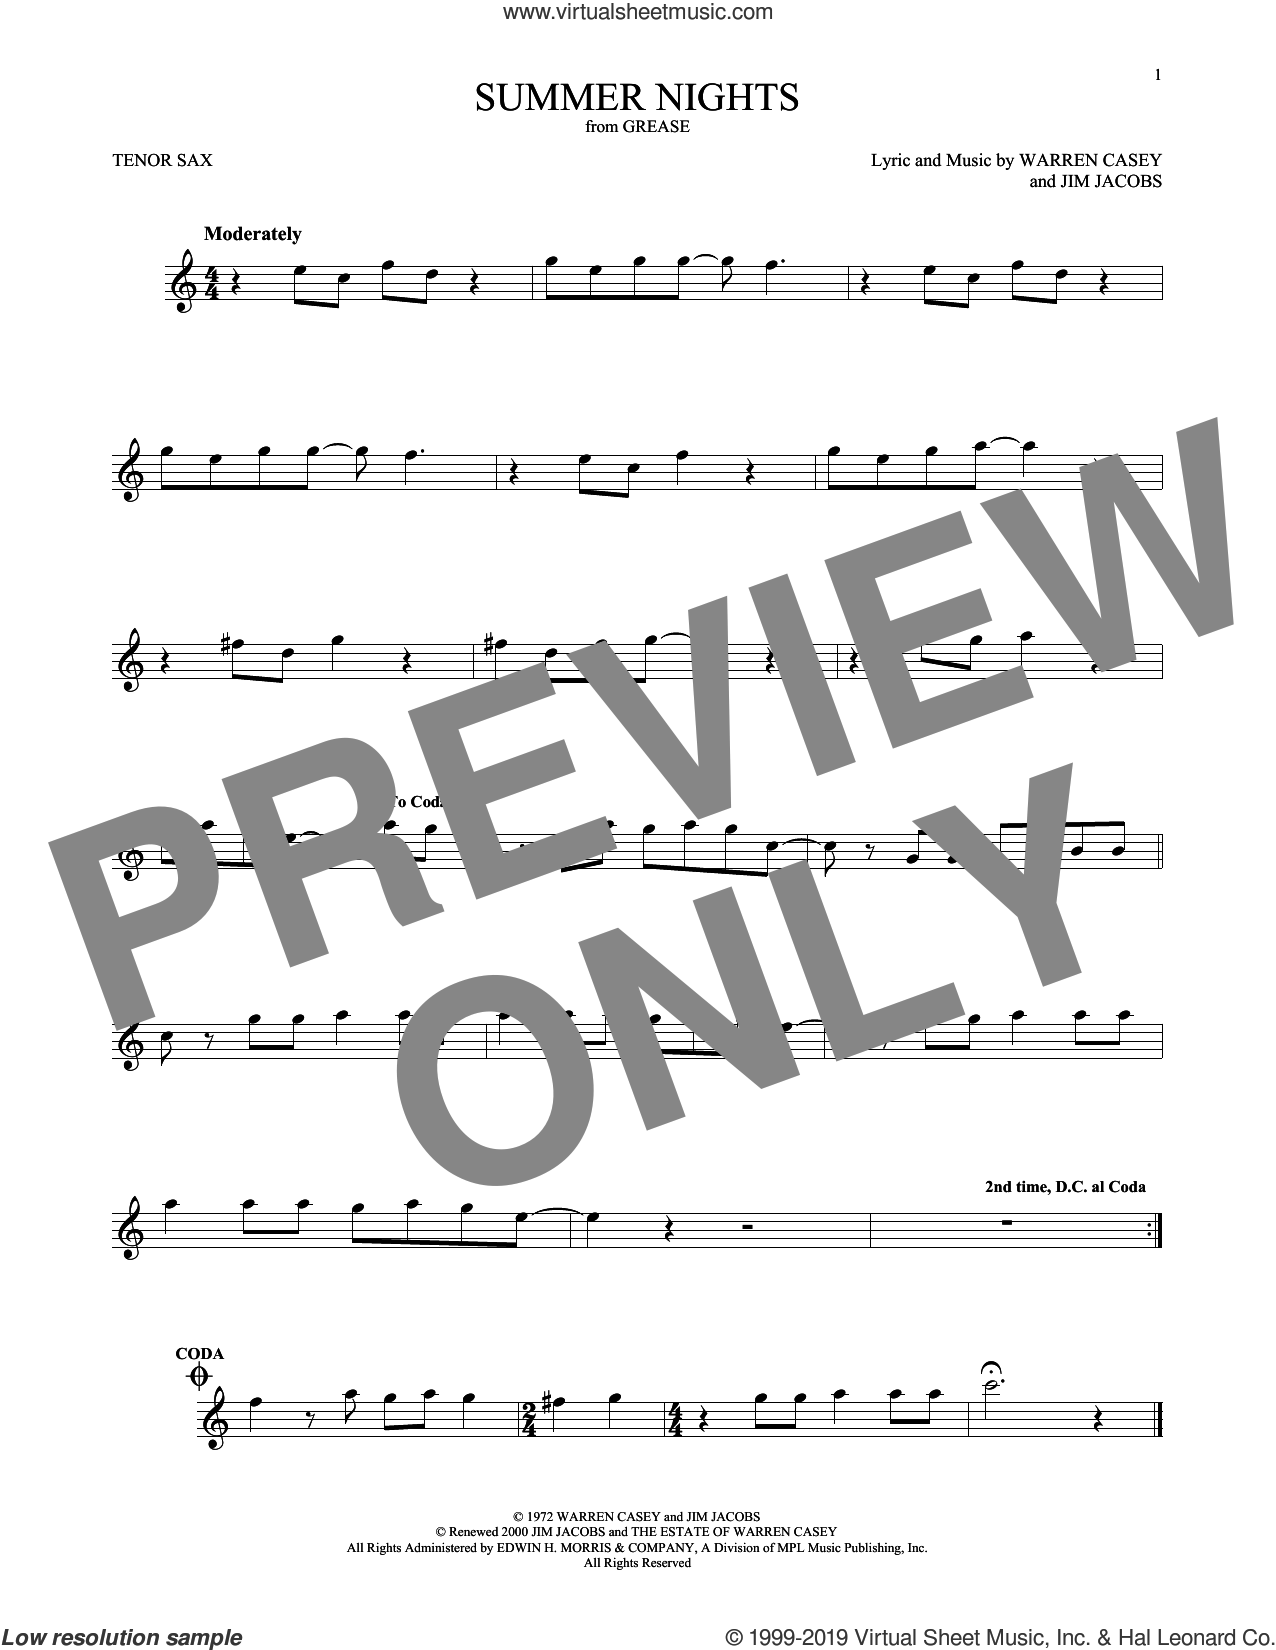 Summer Nights sheet music for tenor saxophone solo by Jim Jacobs and Warren Casey, intermediate skill level